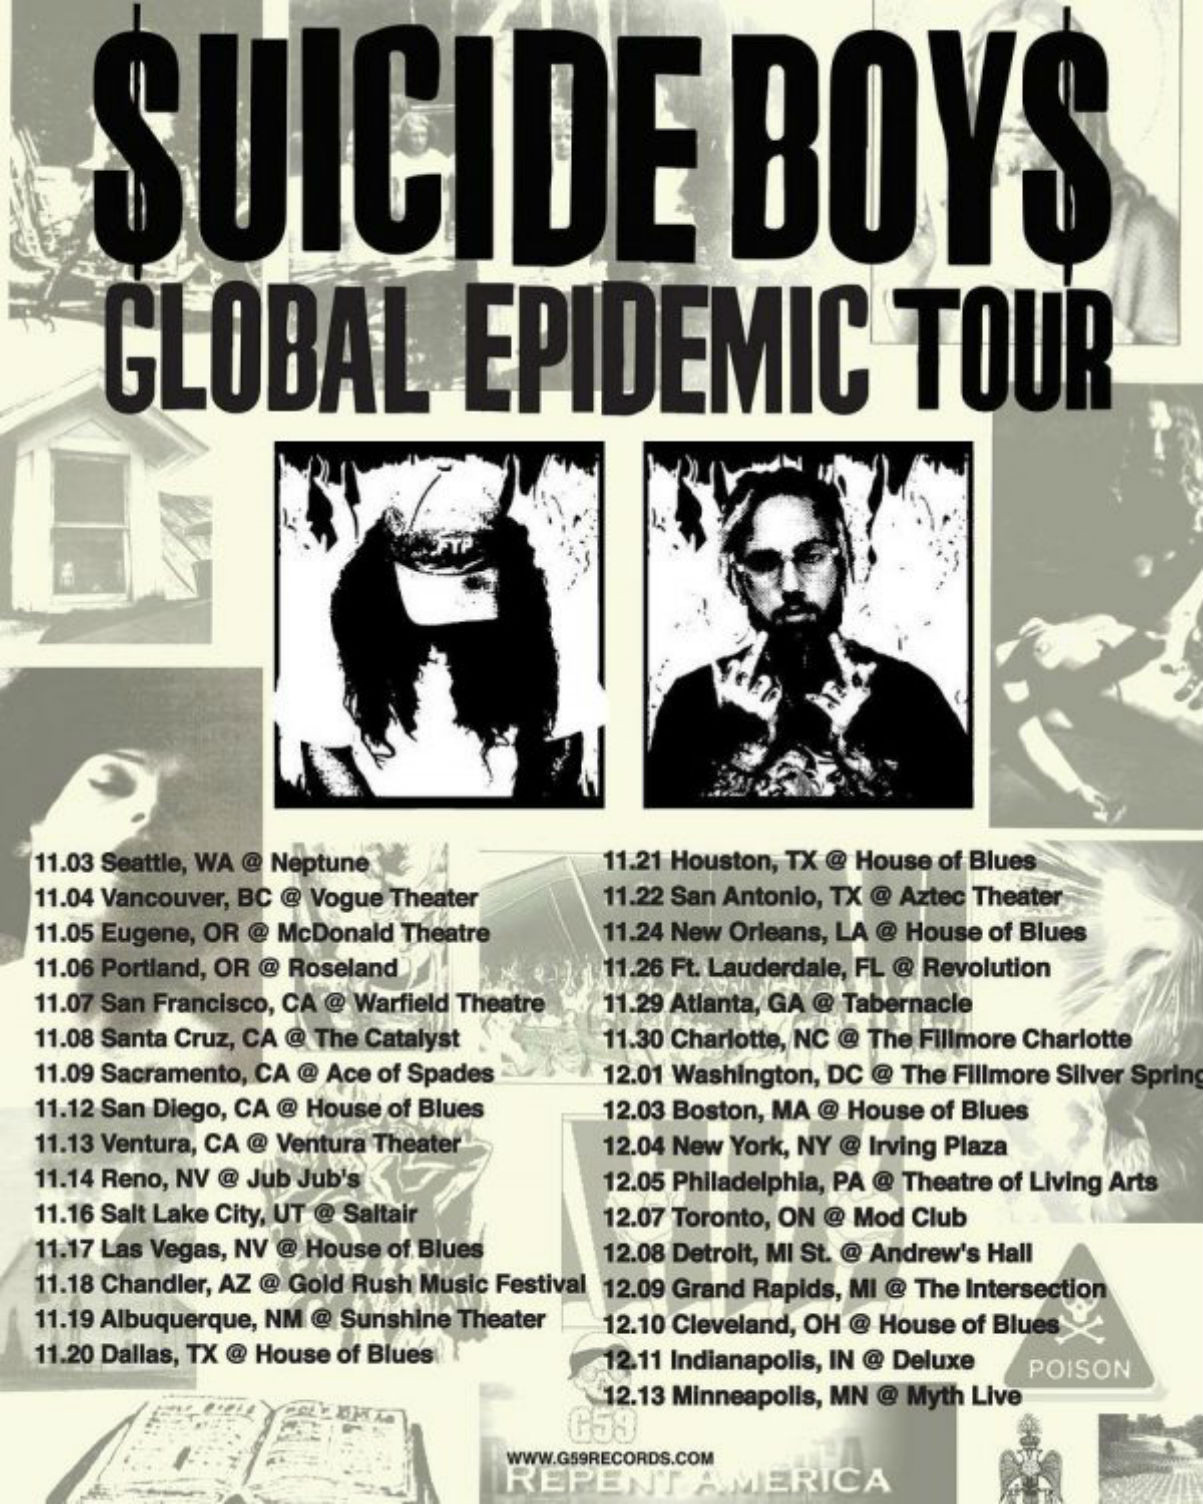 $UICIDEBOY$ Tour 2017 Music Video 2nd Hand Video